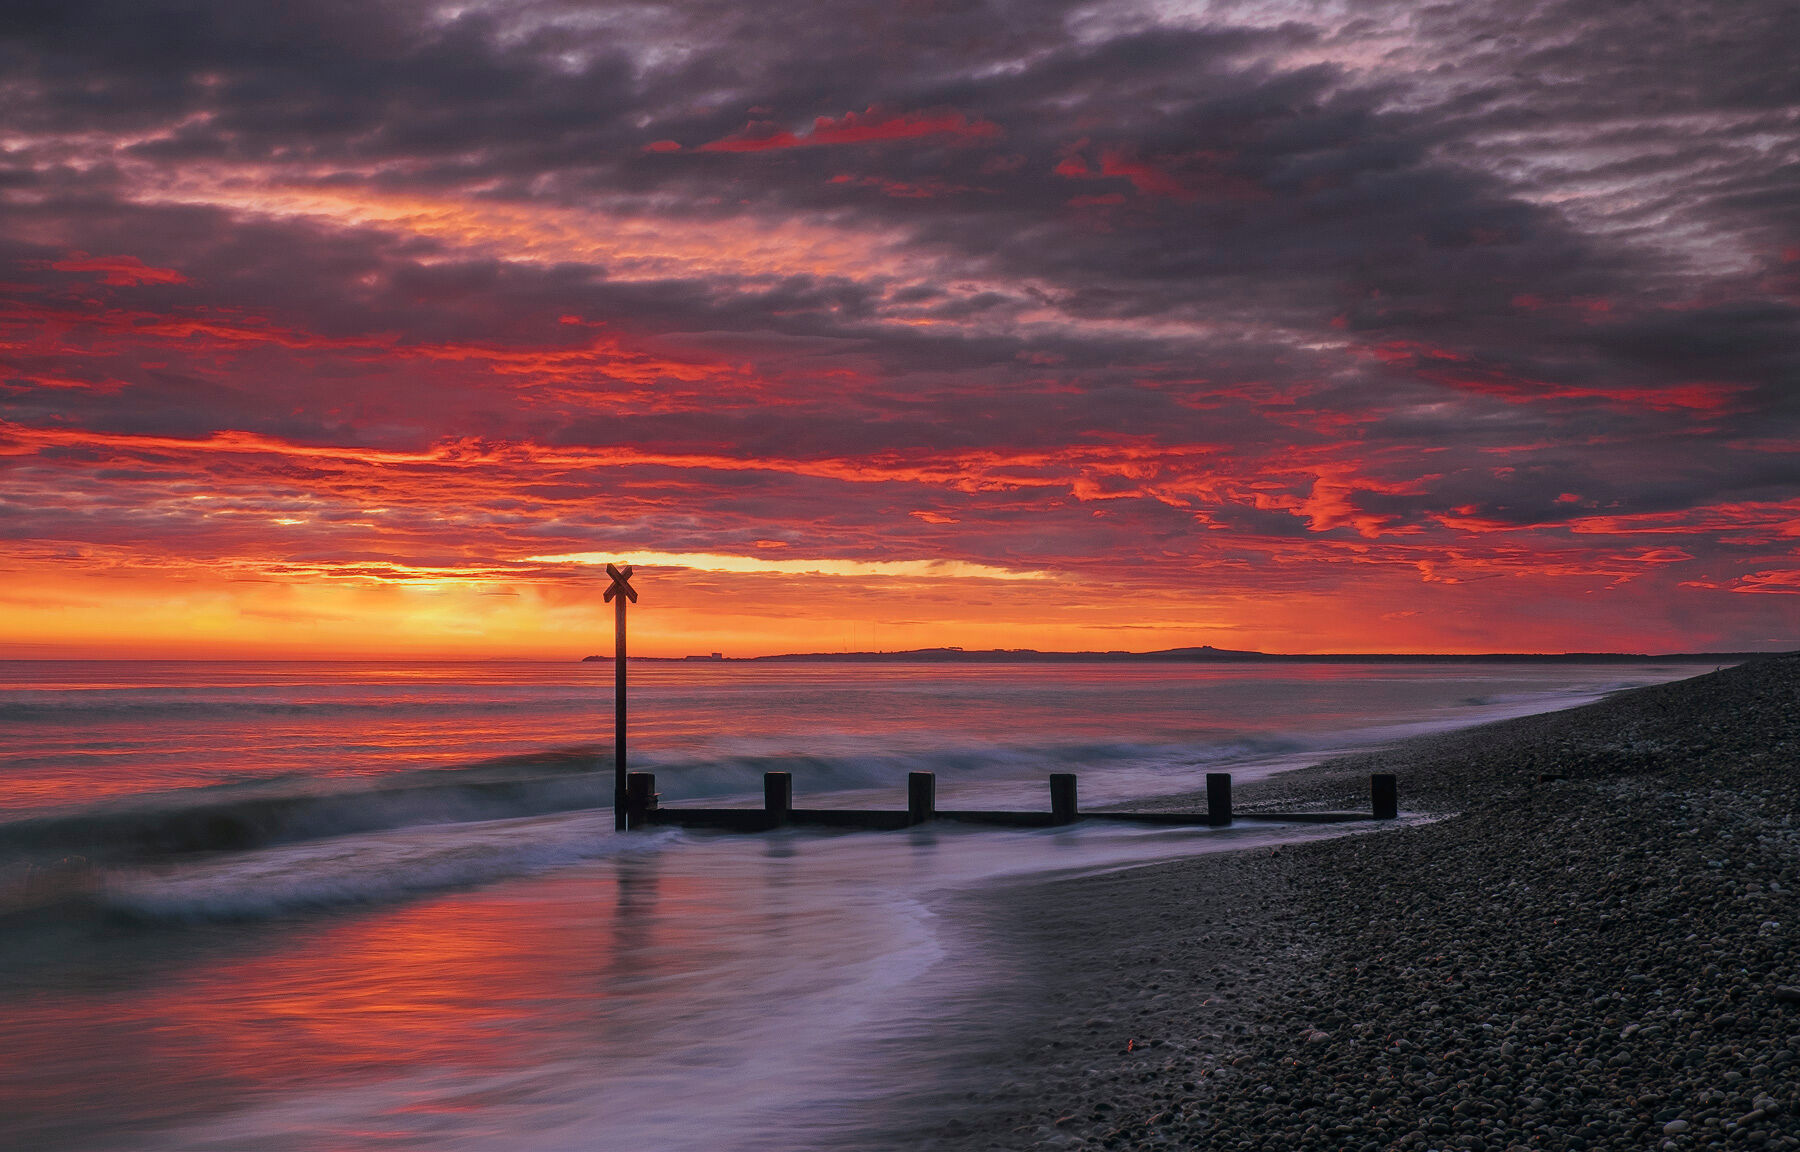 This was far and away the most intense sunrise I have seen all year and I am pleased to say I had an inkling it would happen...